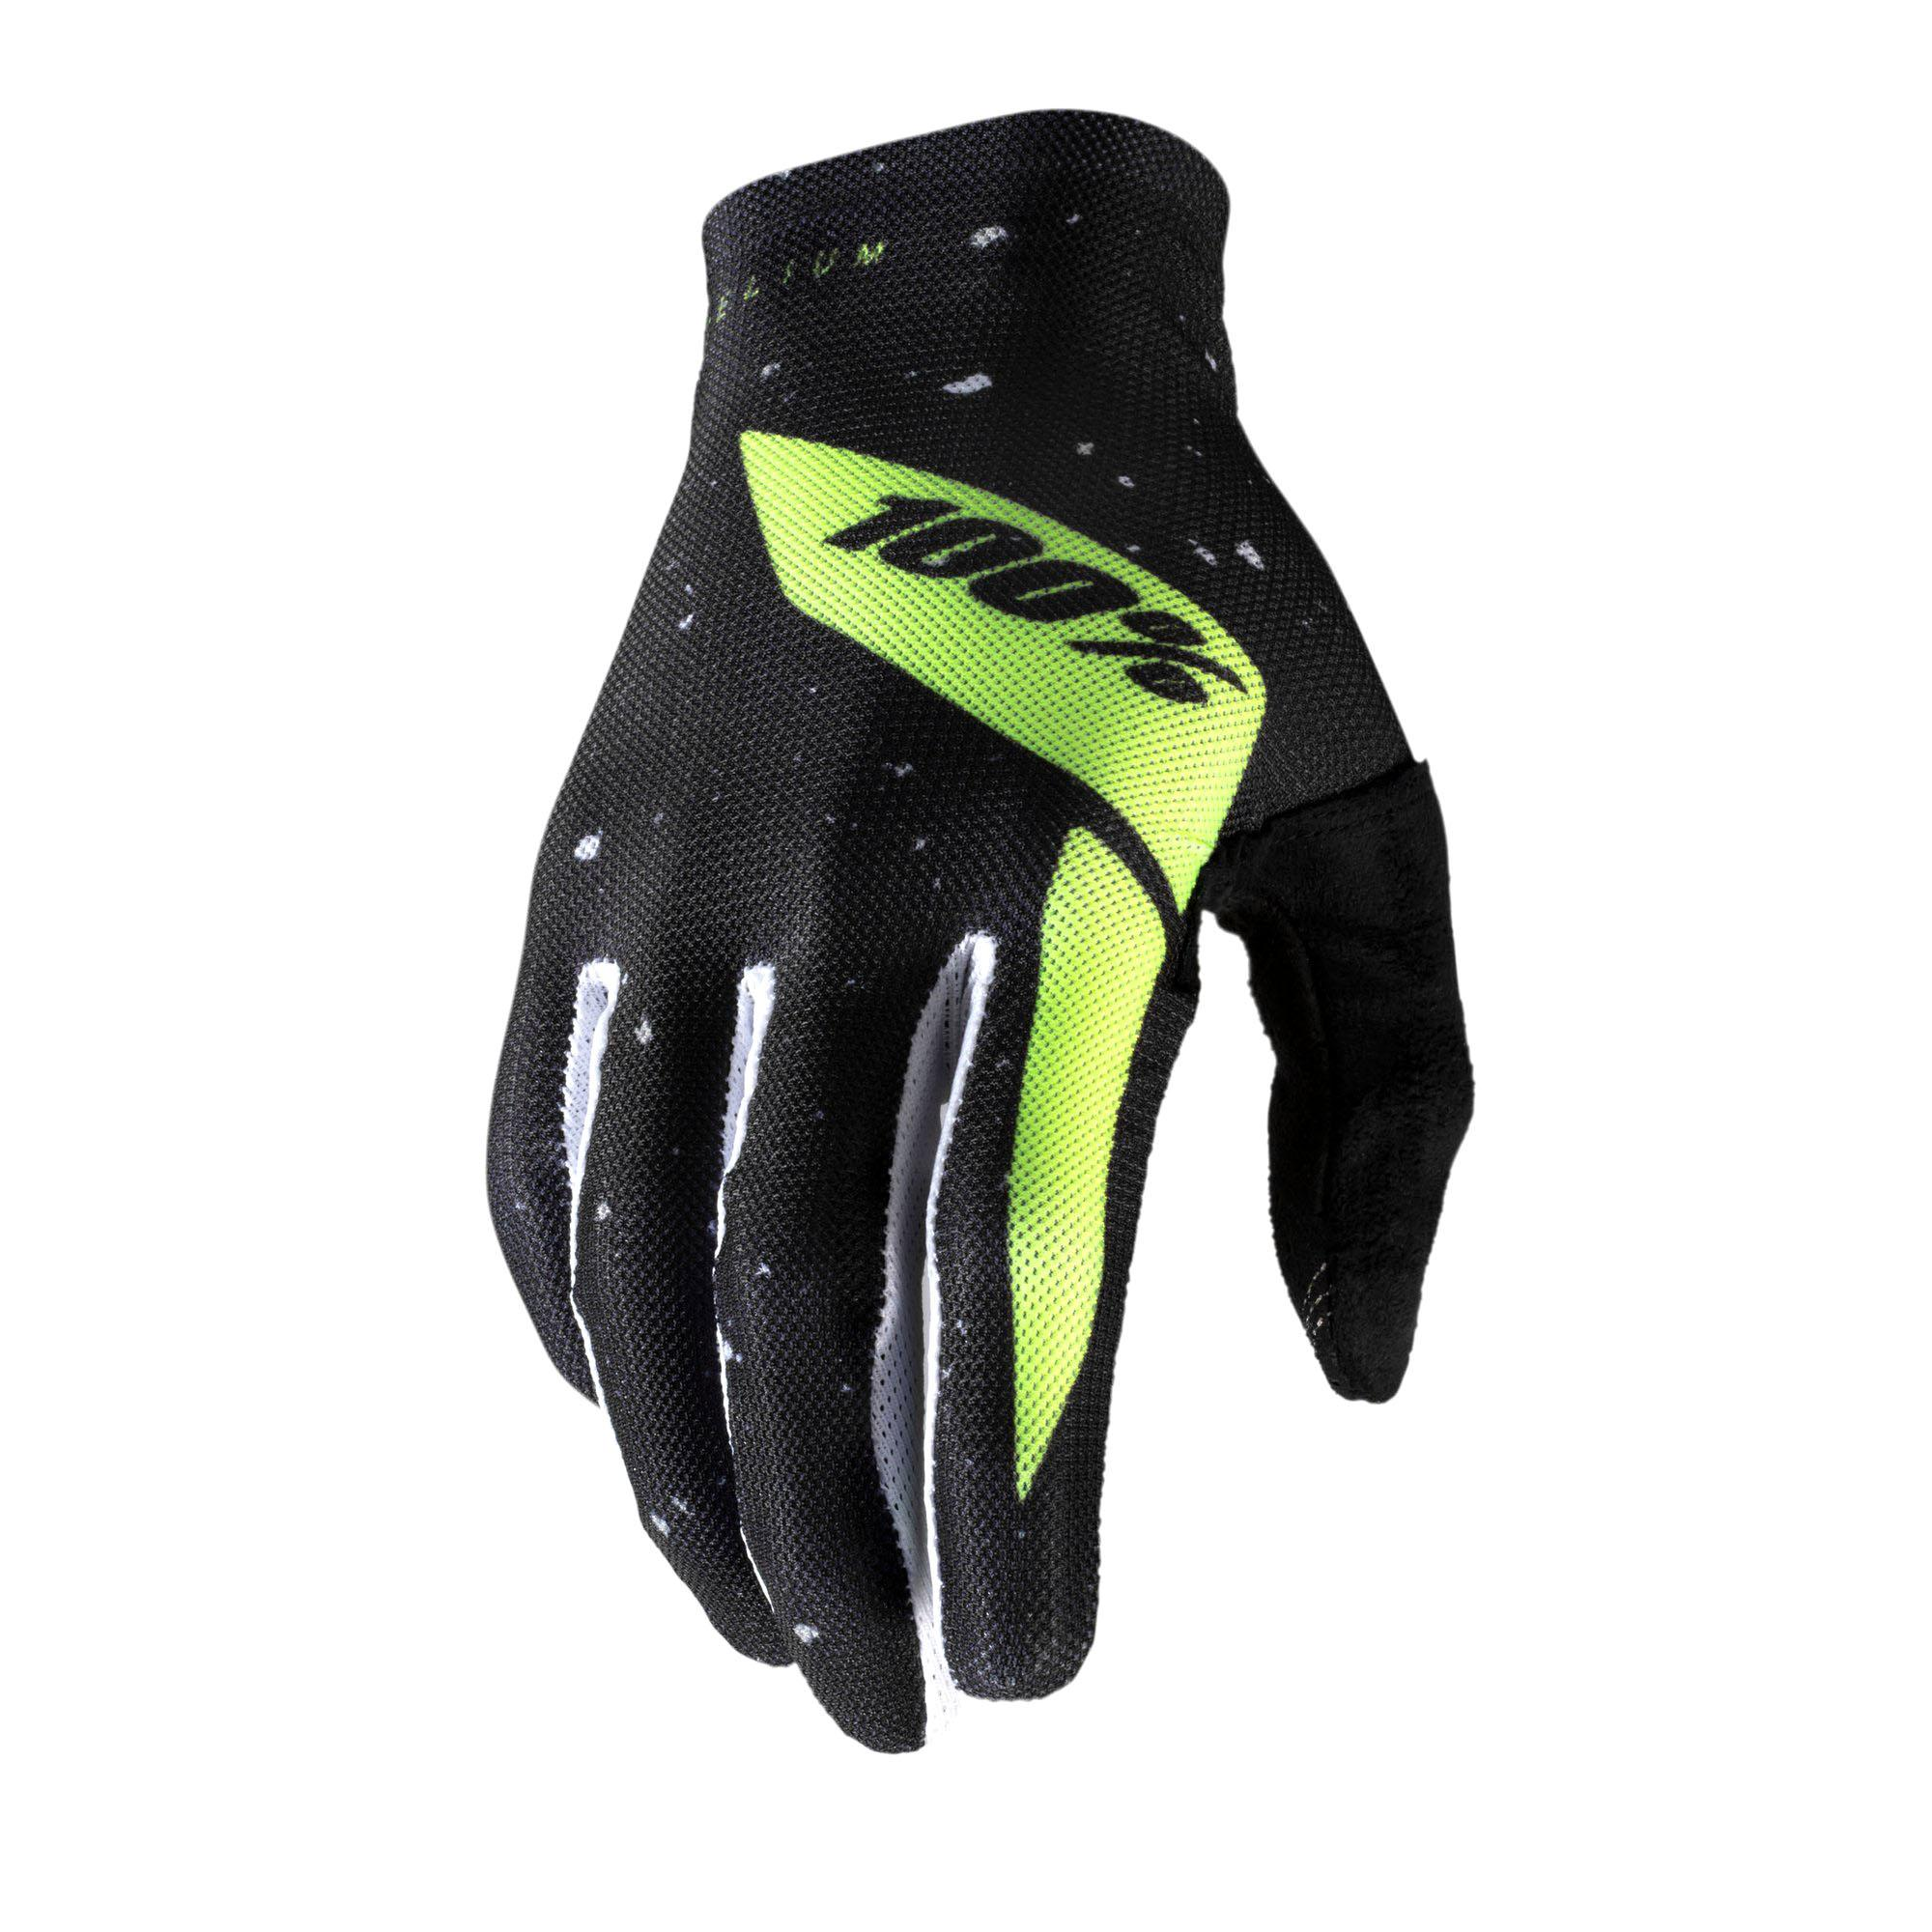 CELIUM Glove Black/Fluo Yellow